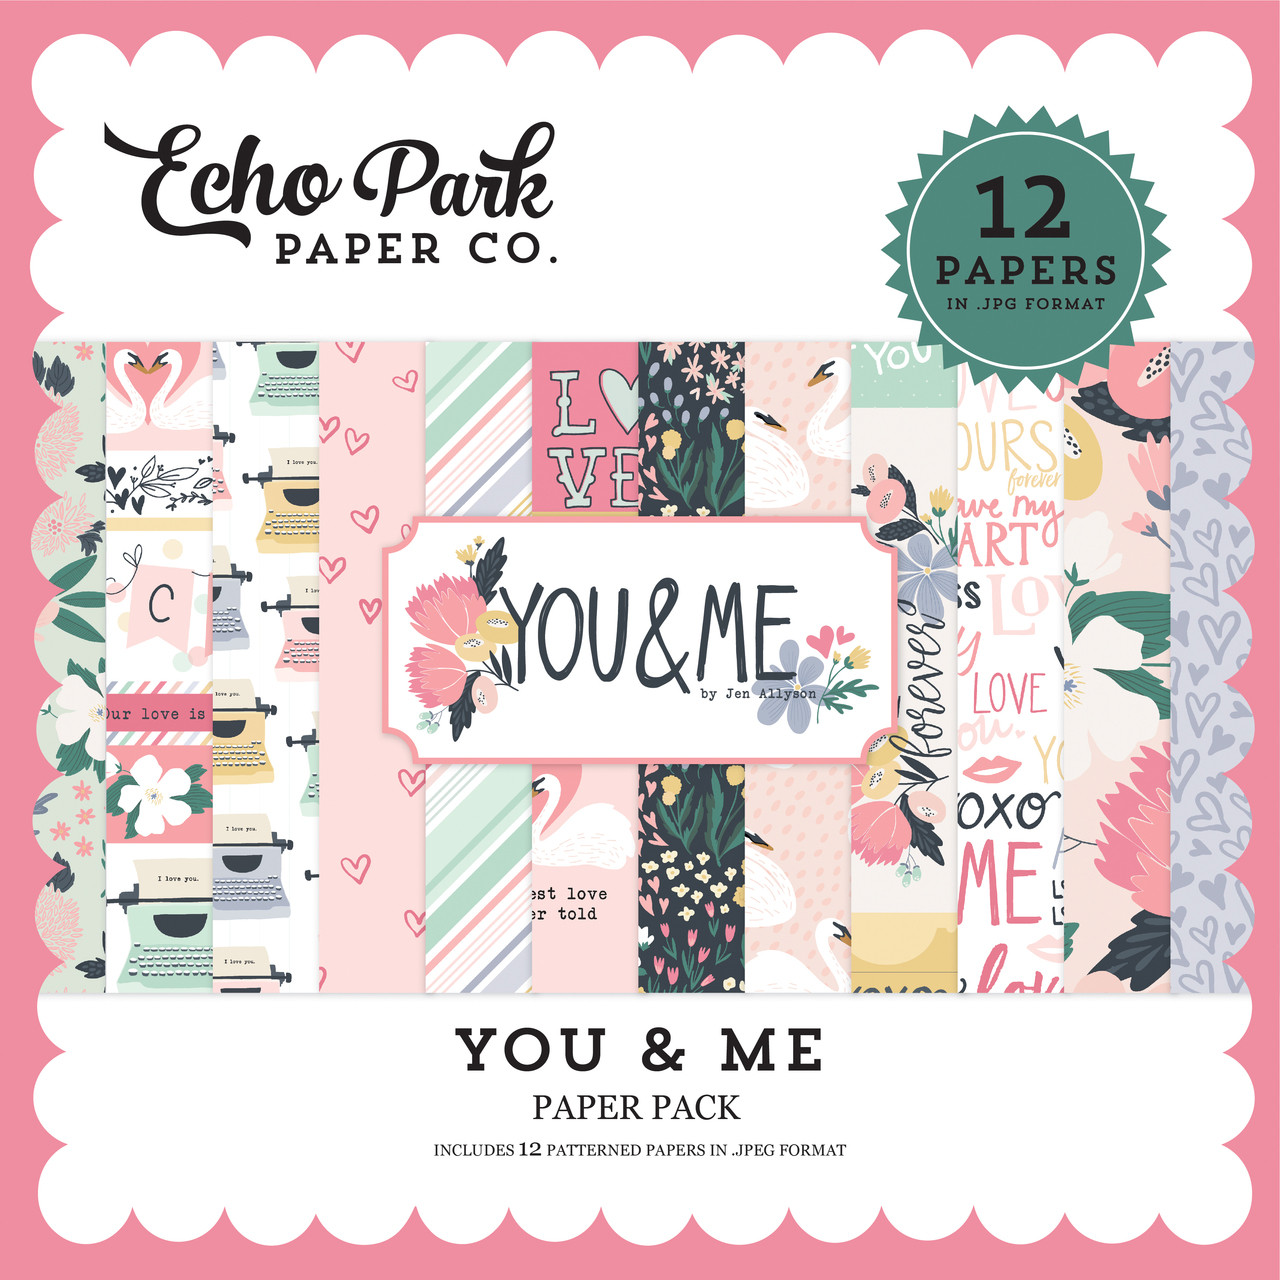 You & Me Paper Pack